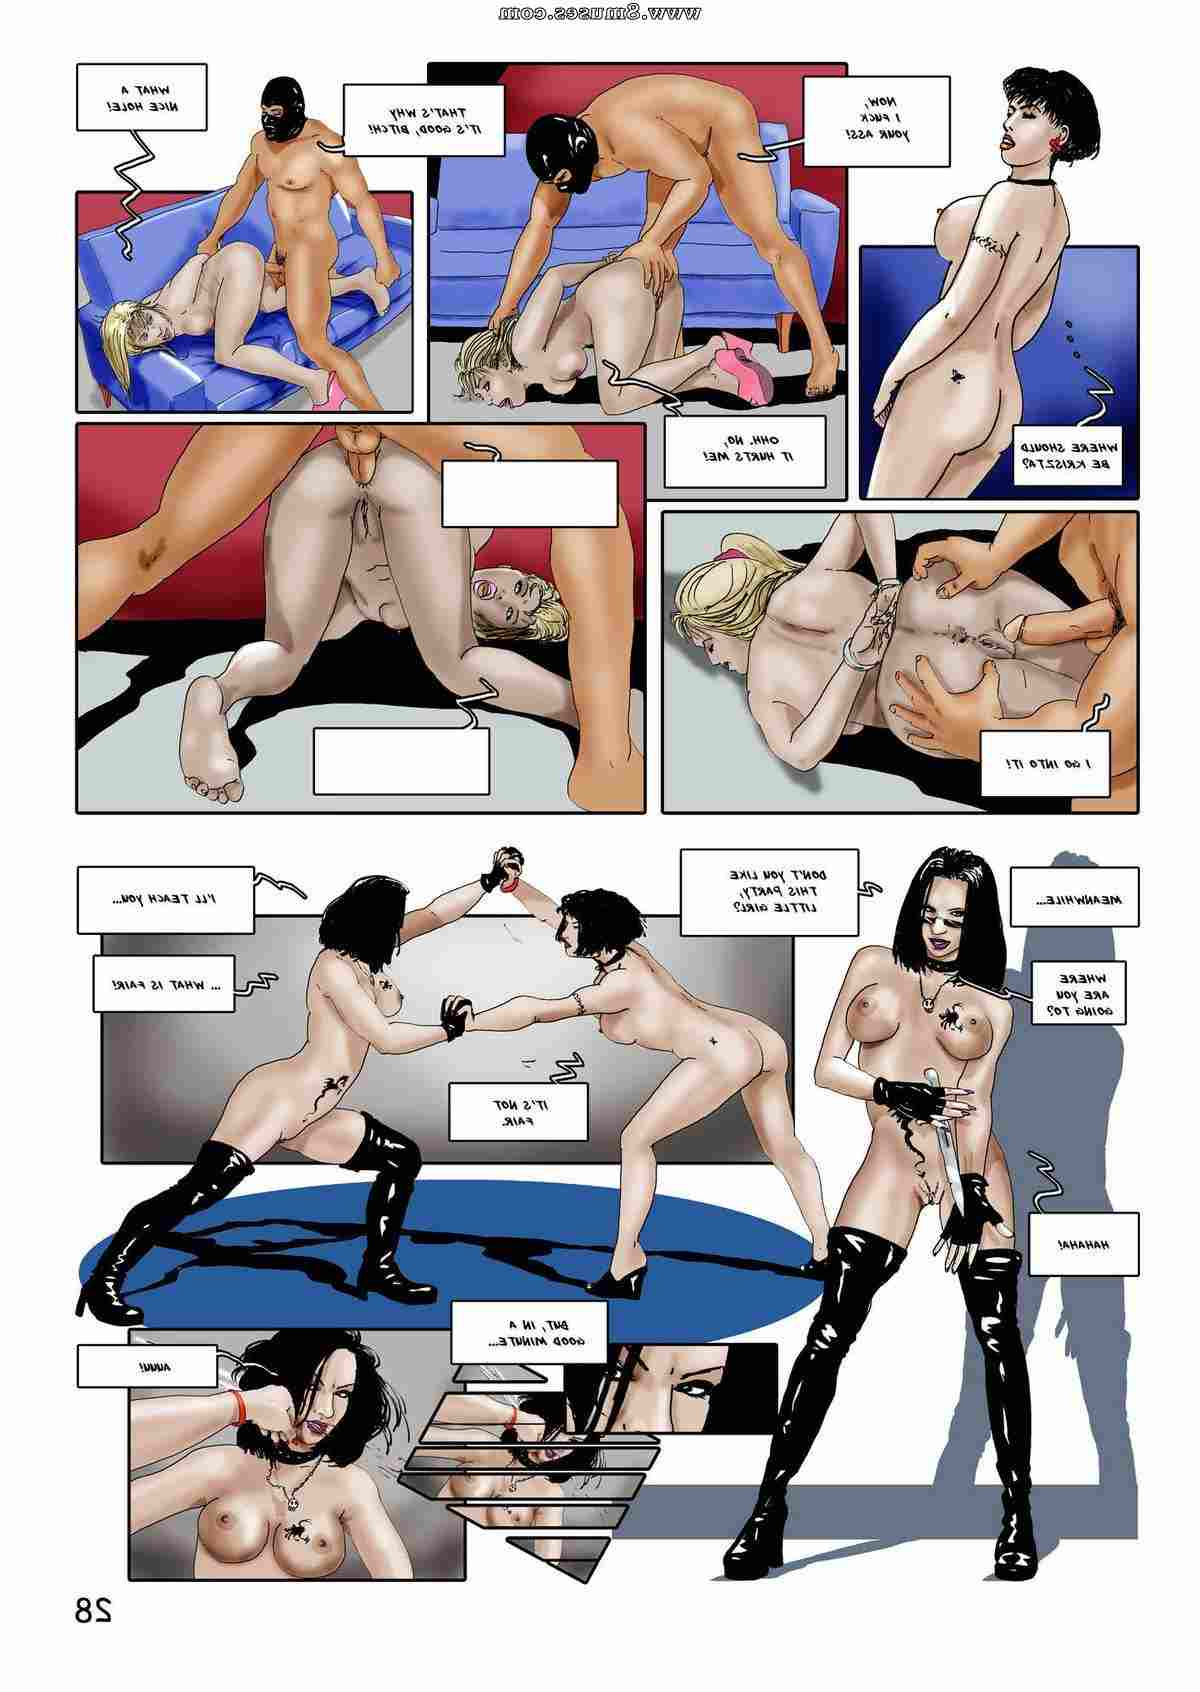 AllPornComics_com-Comics/Danube-Girls Danube_Girls__8muses_-_Sex_and_Porn_Comics_28.jpg